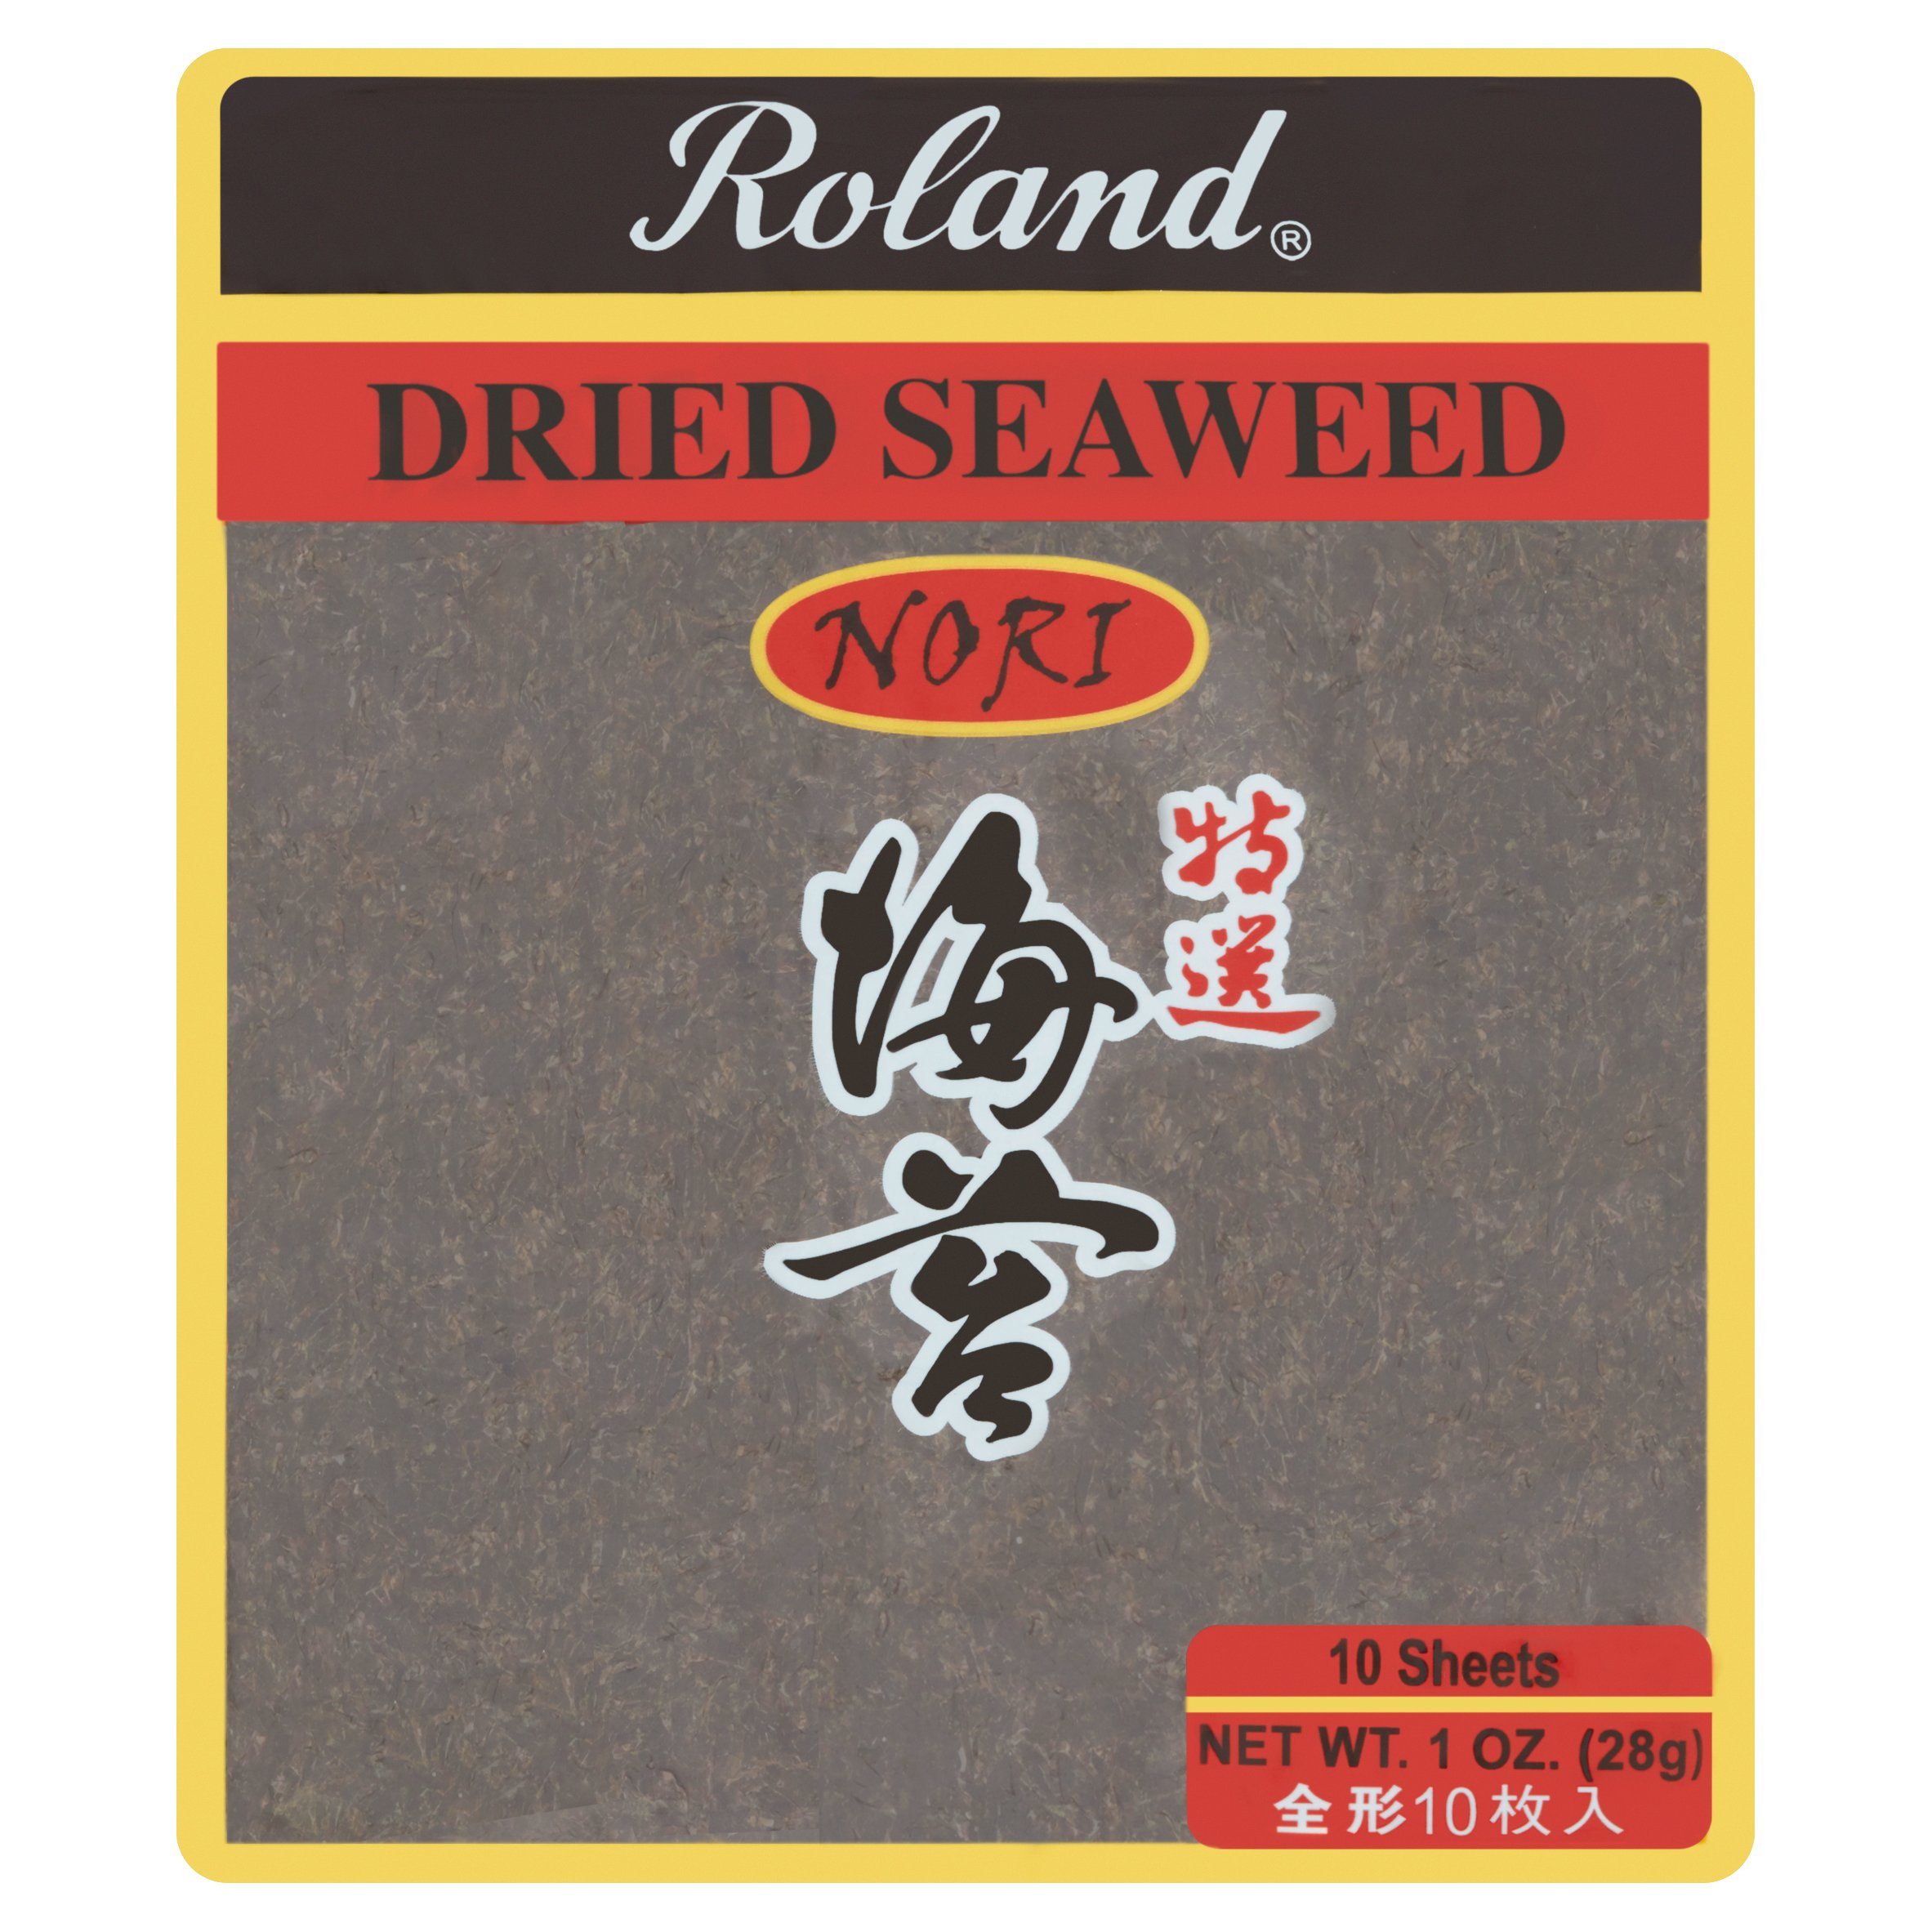 (2 Pack) Roland Nori Dried Seaweed Sheets, 10 count, 1 oz